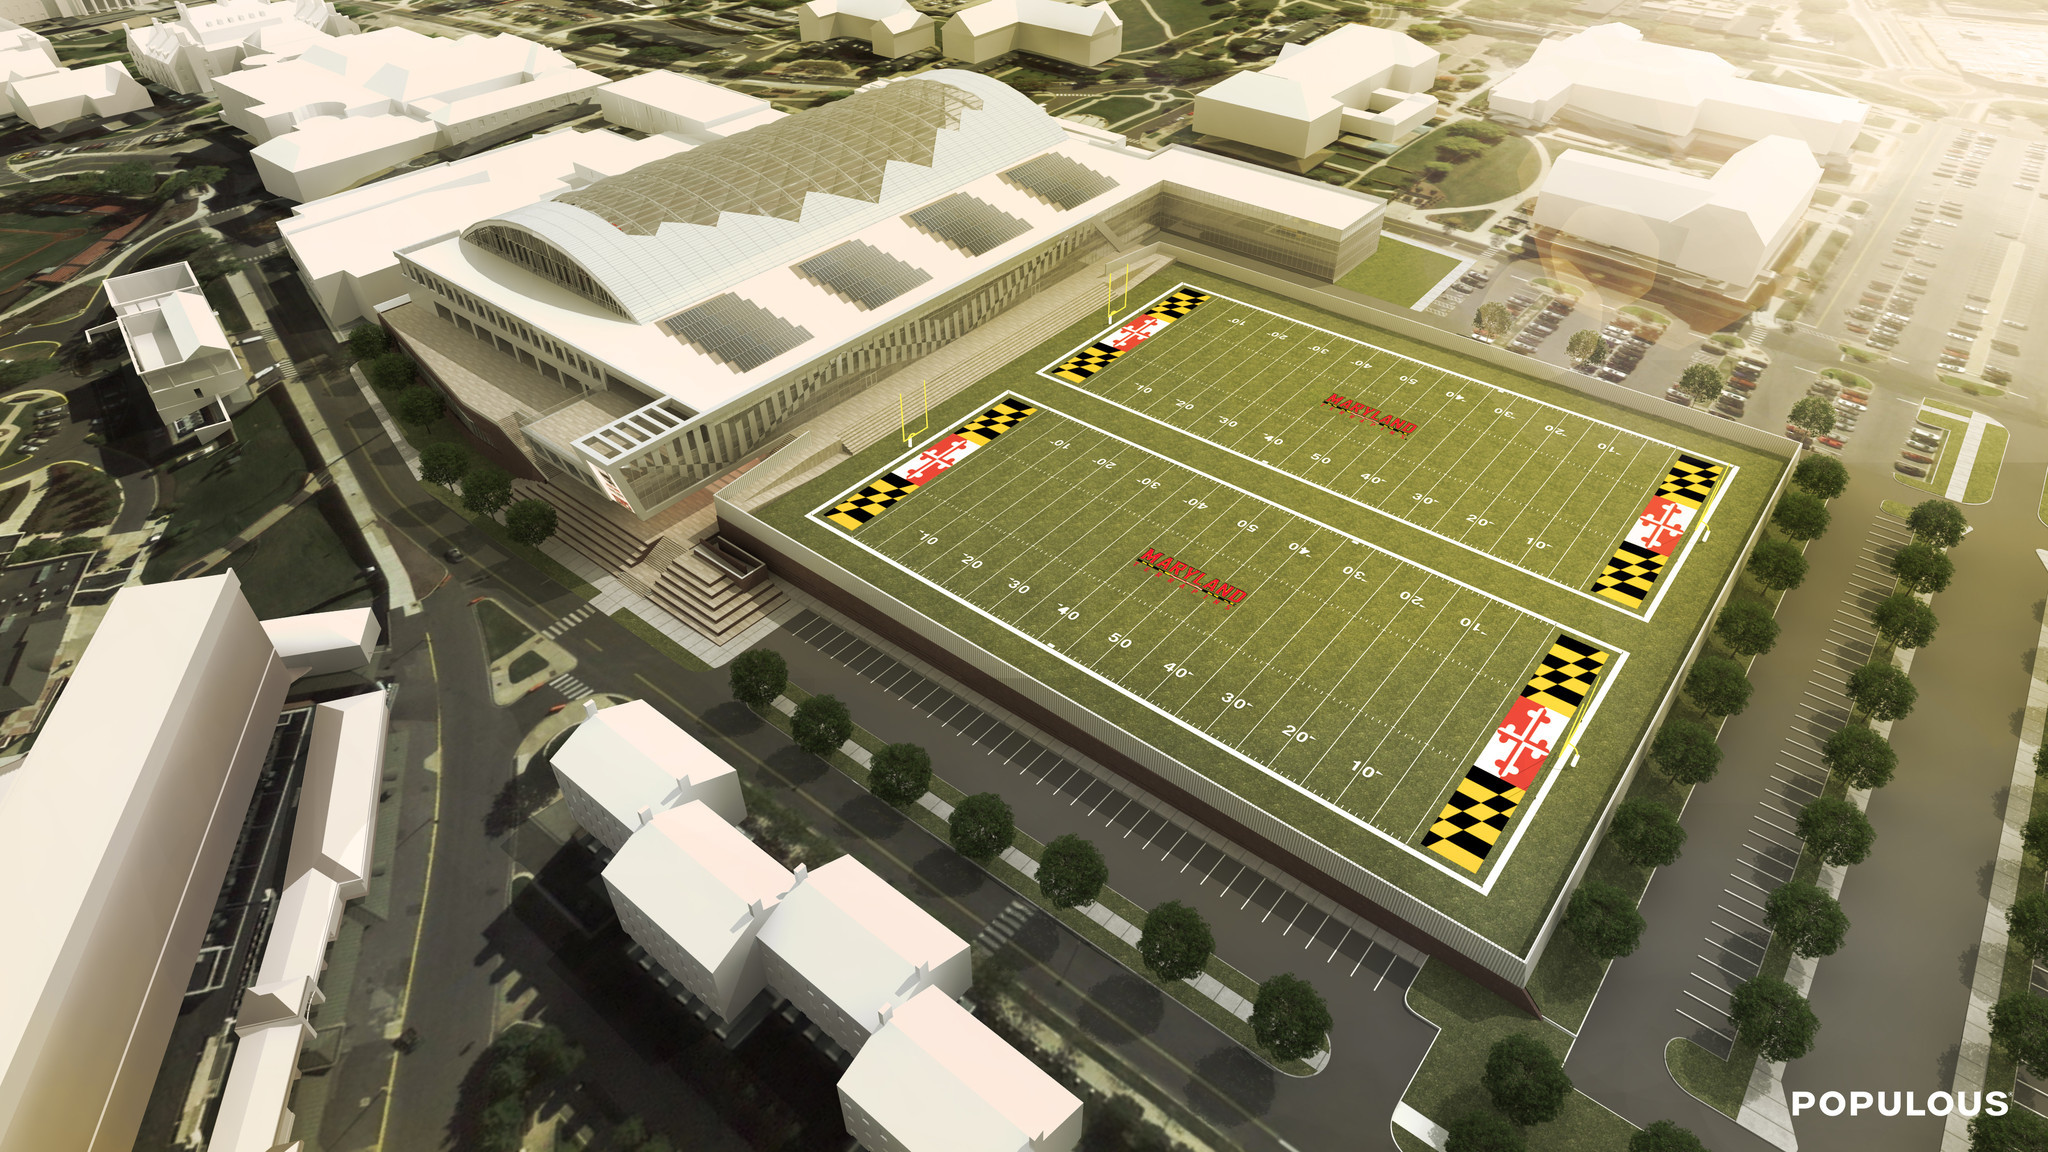 development of new university sports facility The culmination of depauw's master facilities plan for athletics started in 2012 was the recent opening of a new stadium for field hockey, lacrosse and soccer according to a story released by the university.